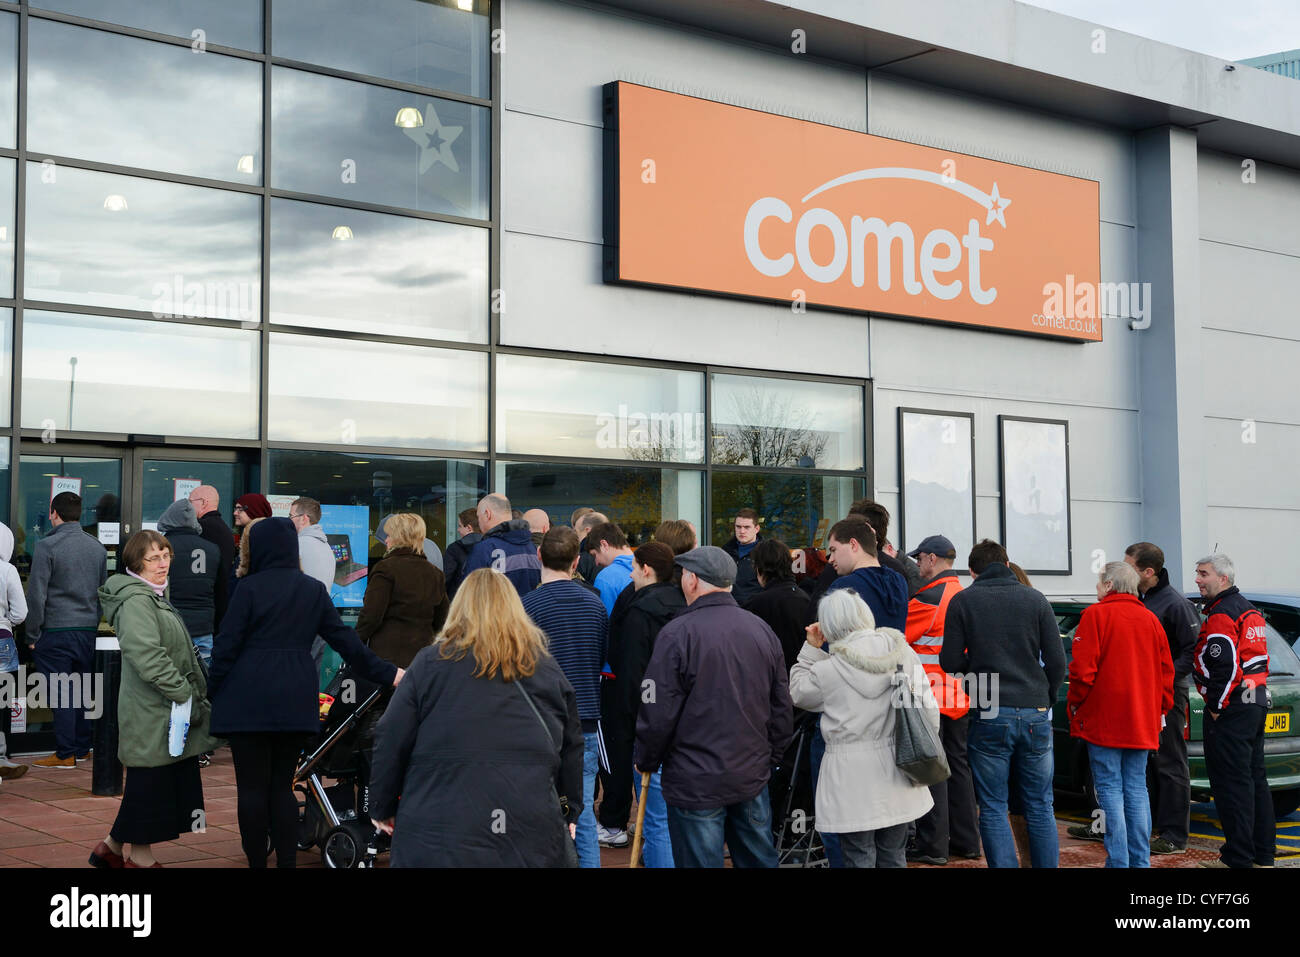 Chester, UK. 3rd November 2012. People wait for the 10am opening of the Comet store on the Greyhound Retail Park - Stock Image